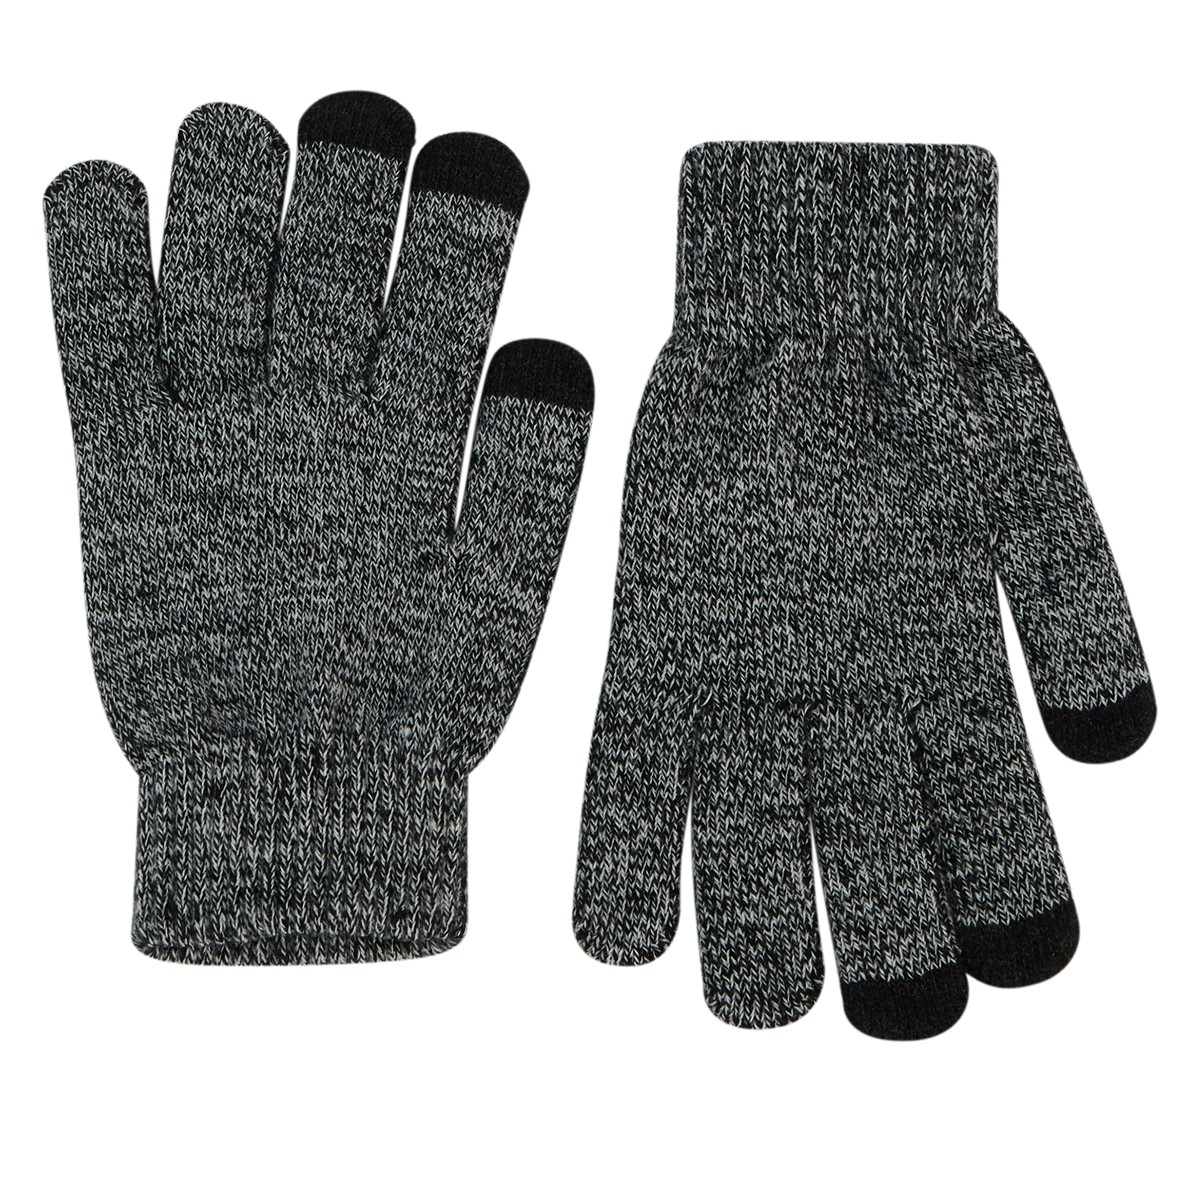 Charlie Magic Gloves in Charcoal Grey